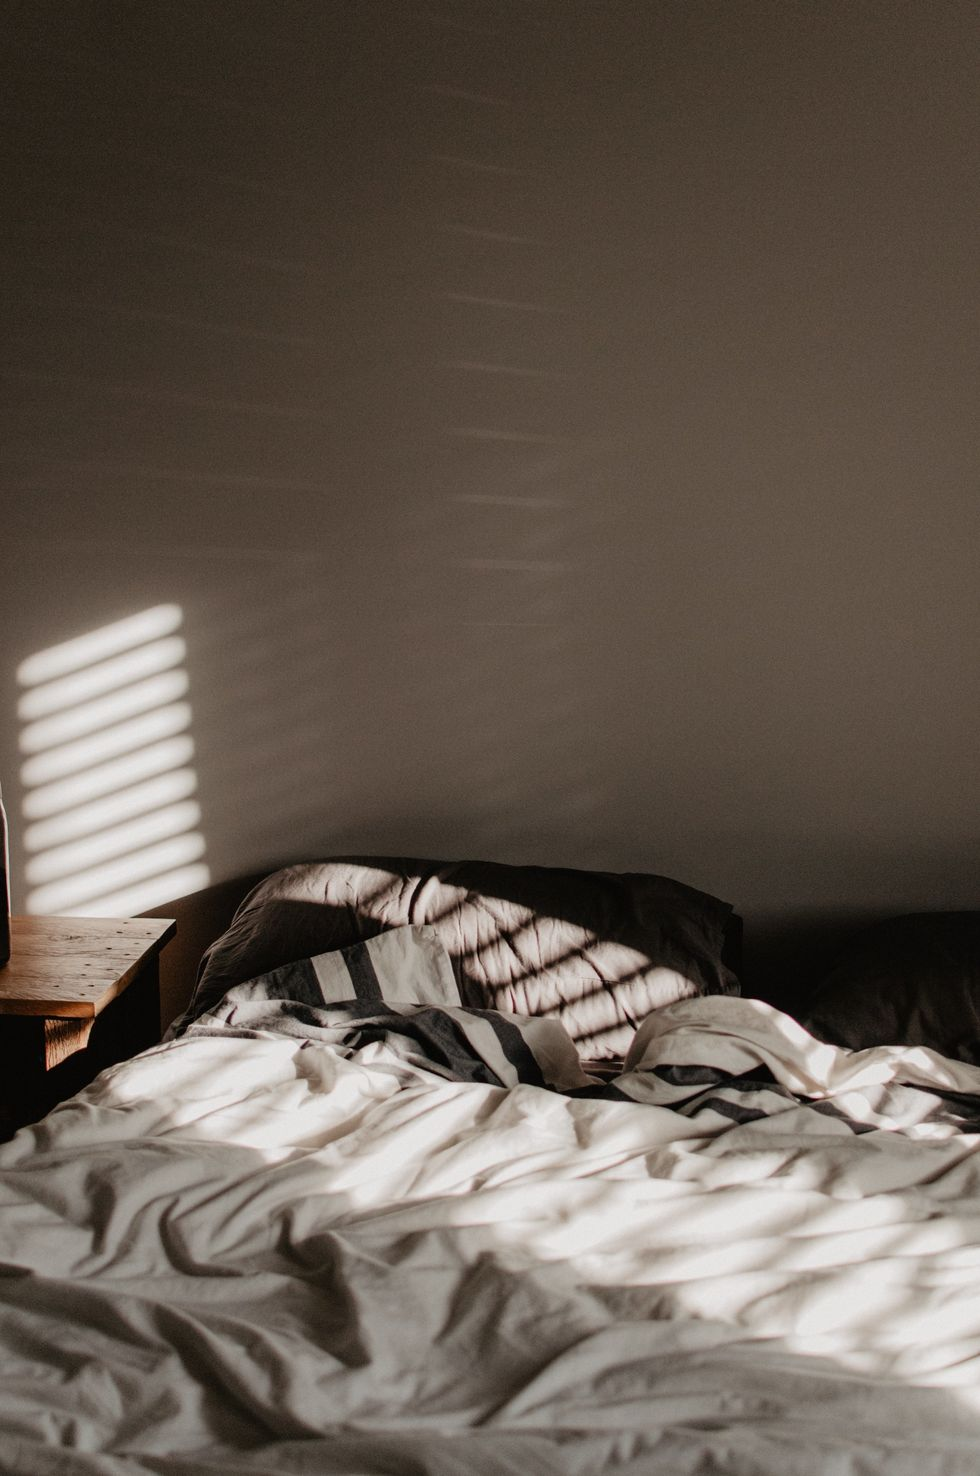 10 Things You Can Do To Get A Good Night's Sleep When You Have Insomnia